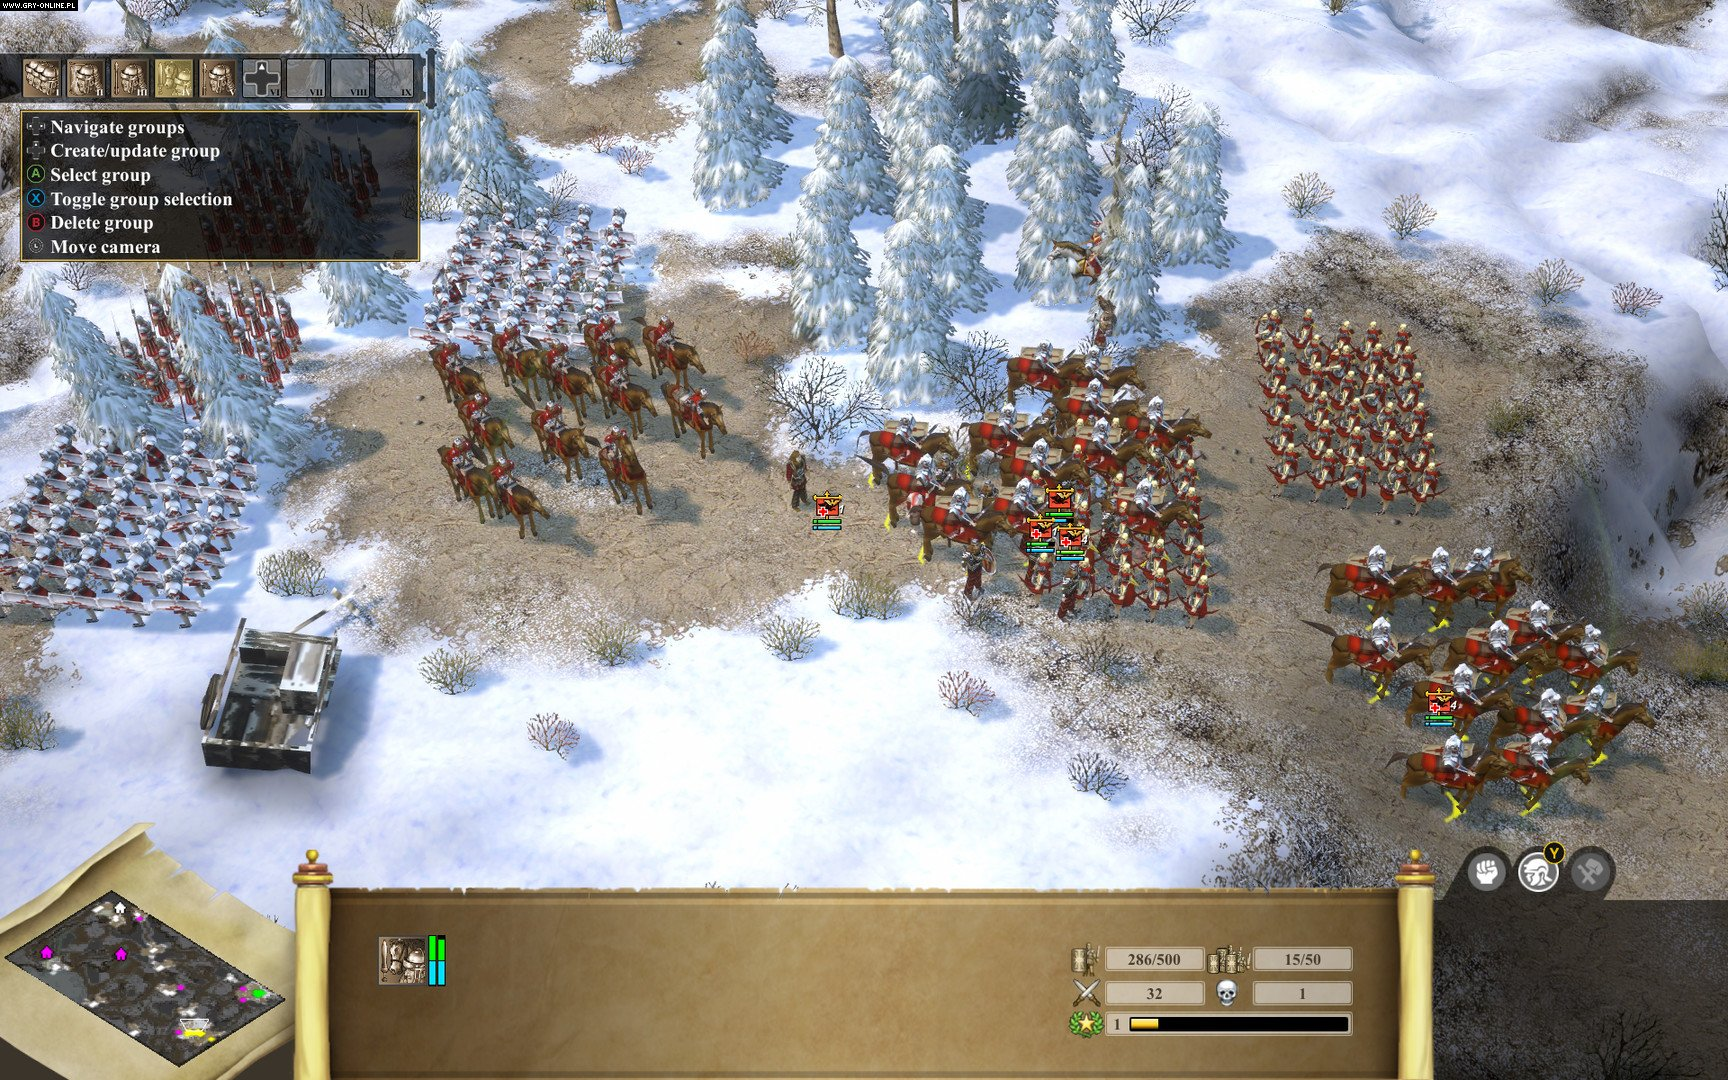 Praetorians: HD Remaster PC, PS4, XONE Games Image 2/8, Torus Games, Kalypso Media